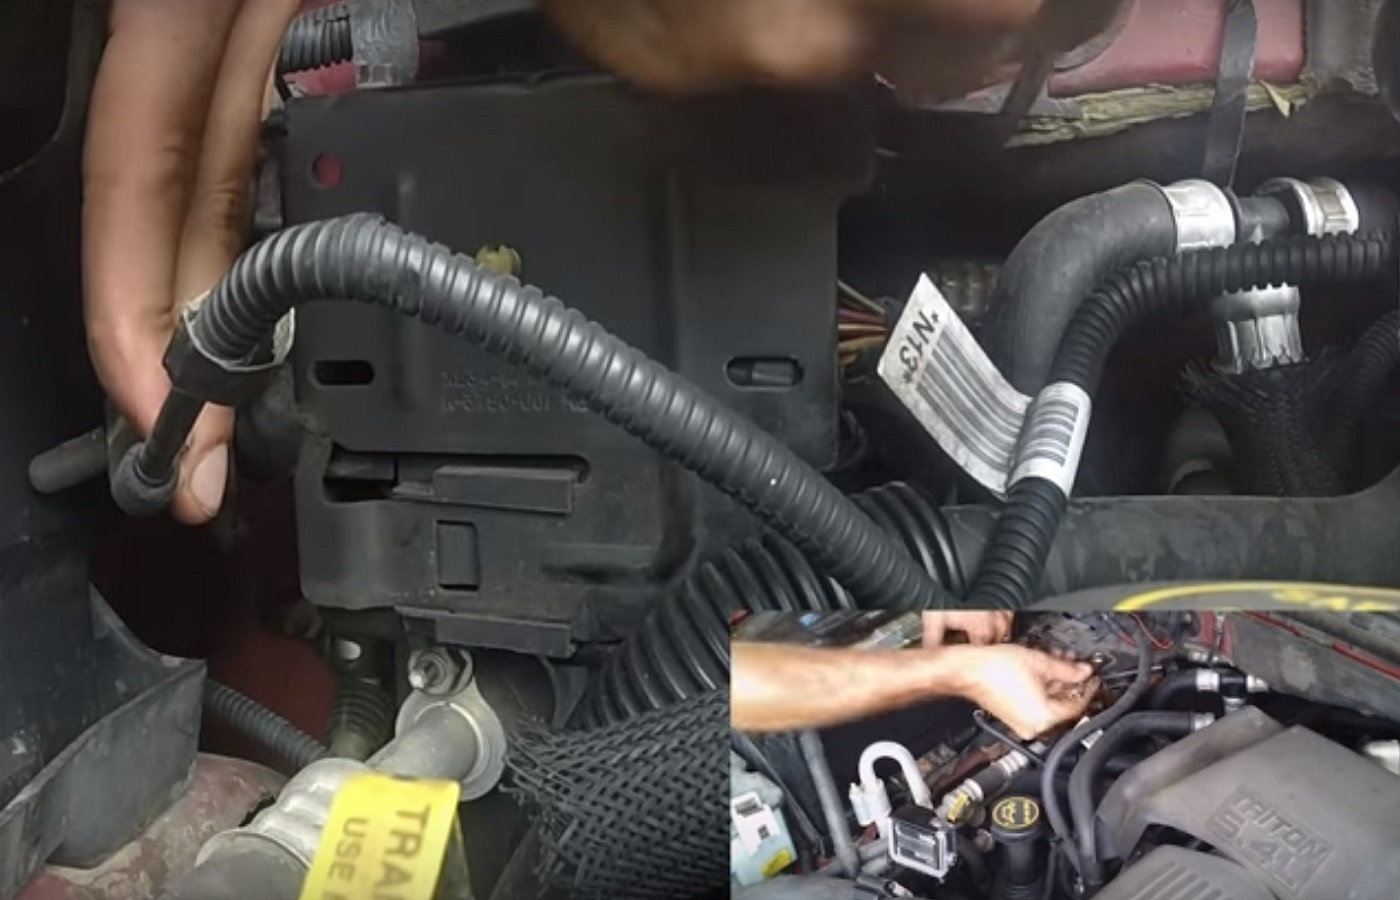 Ford F150 How To Recharge Air Conditioning Fordtrucks. Ford F150 Air Conditioning Ac Recharge How To Charge Freon Diy. Ford. 2000 Ford Expedition Ac Port Diagram At Scoala.co